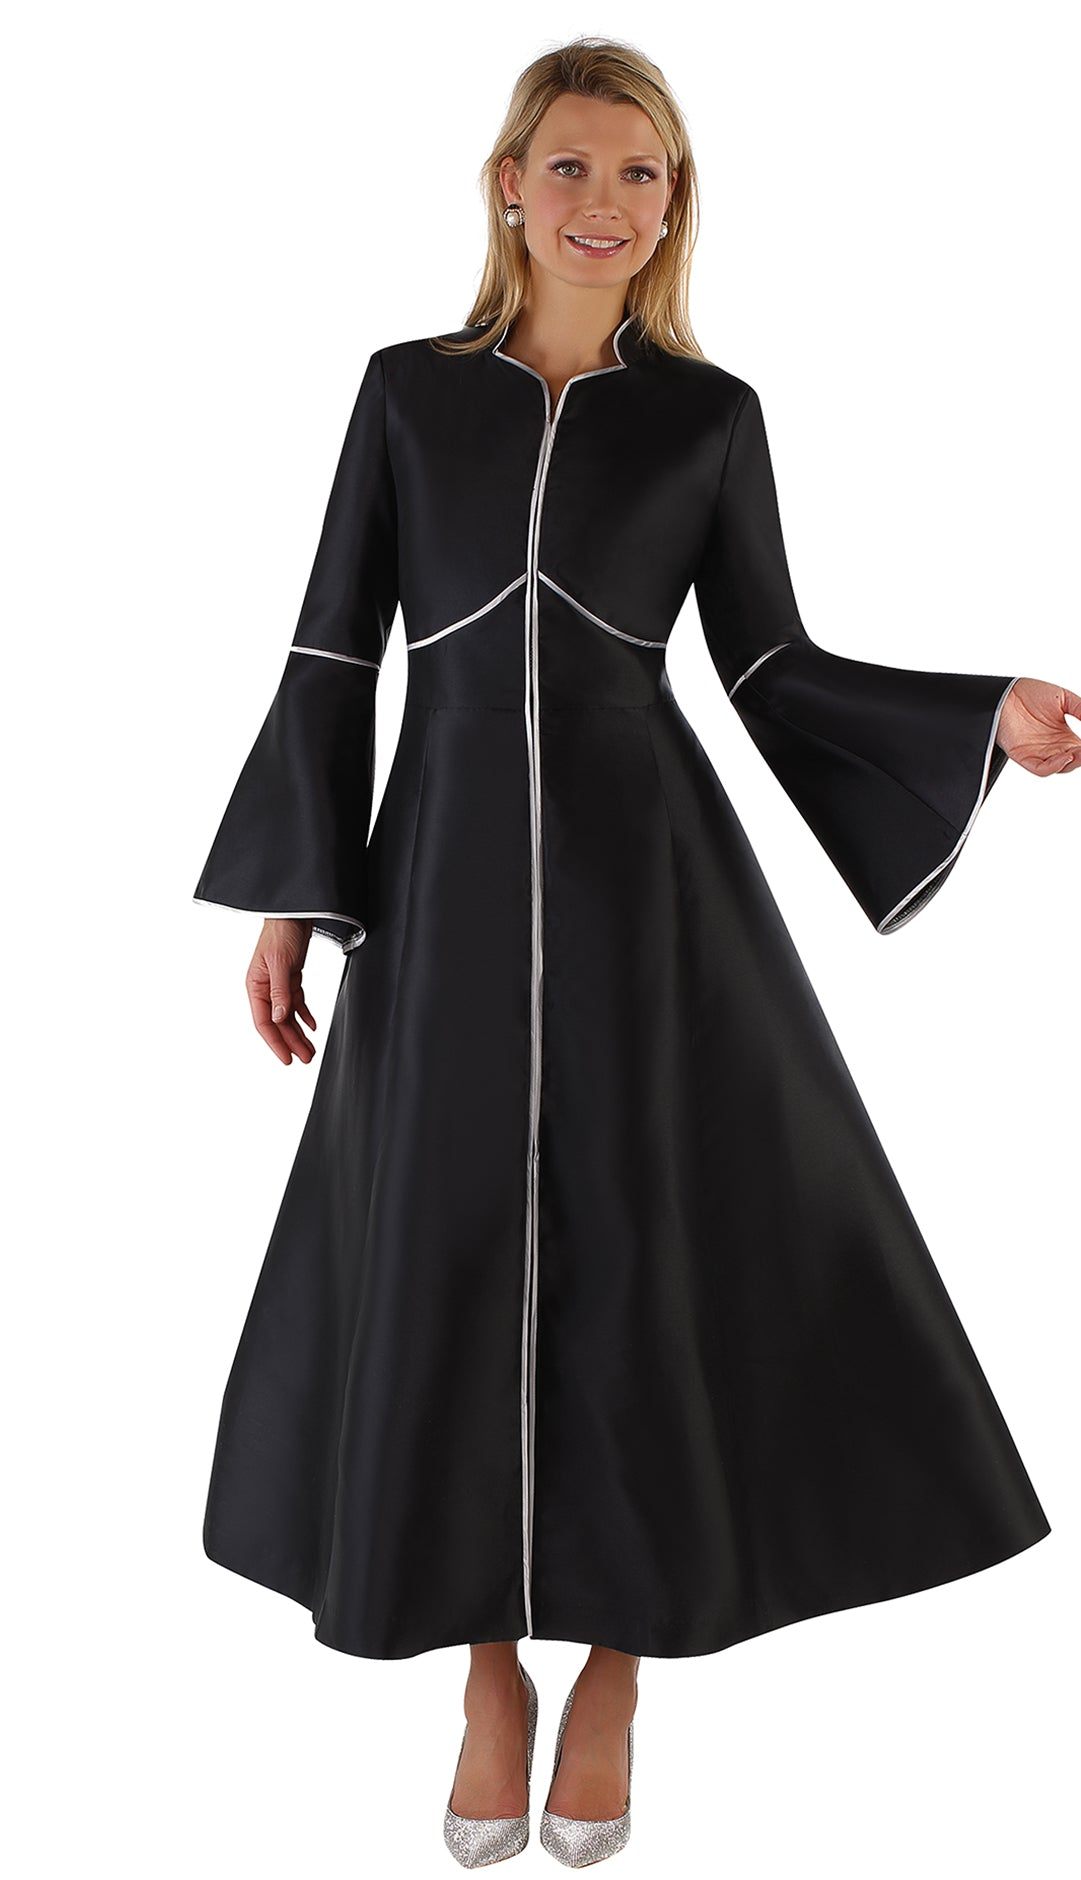 Tally Taylor Church Robe 4731-Black/Silver - Church Suits For Less